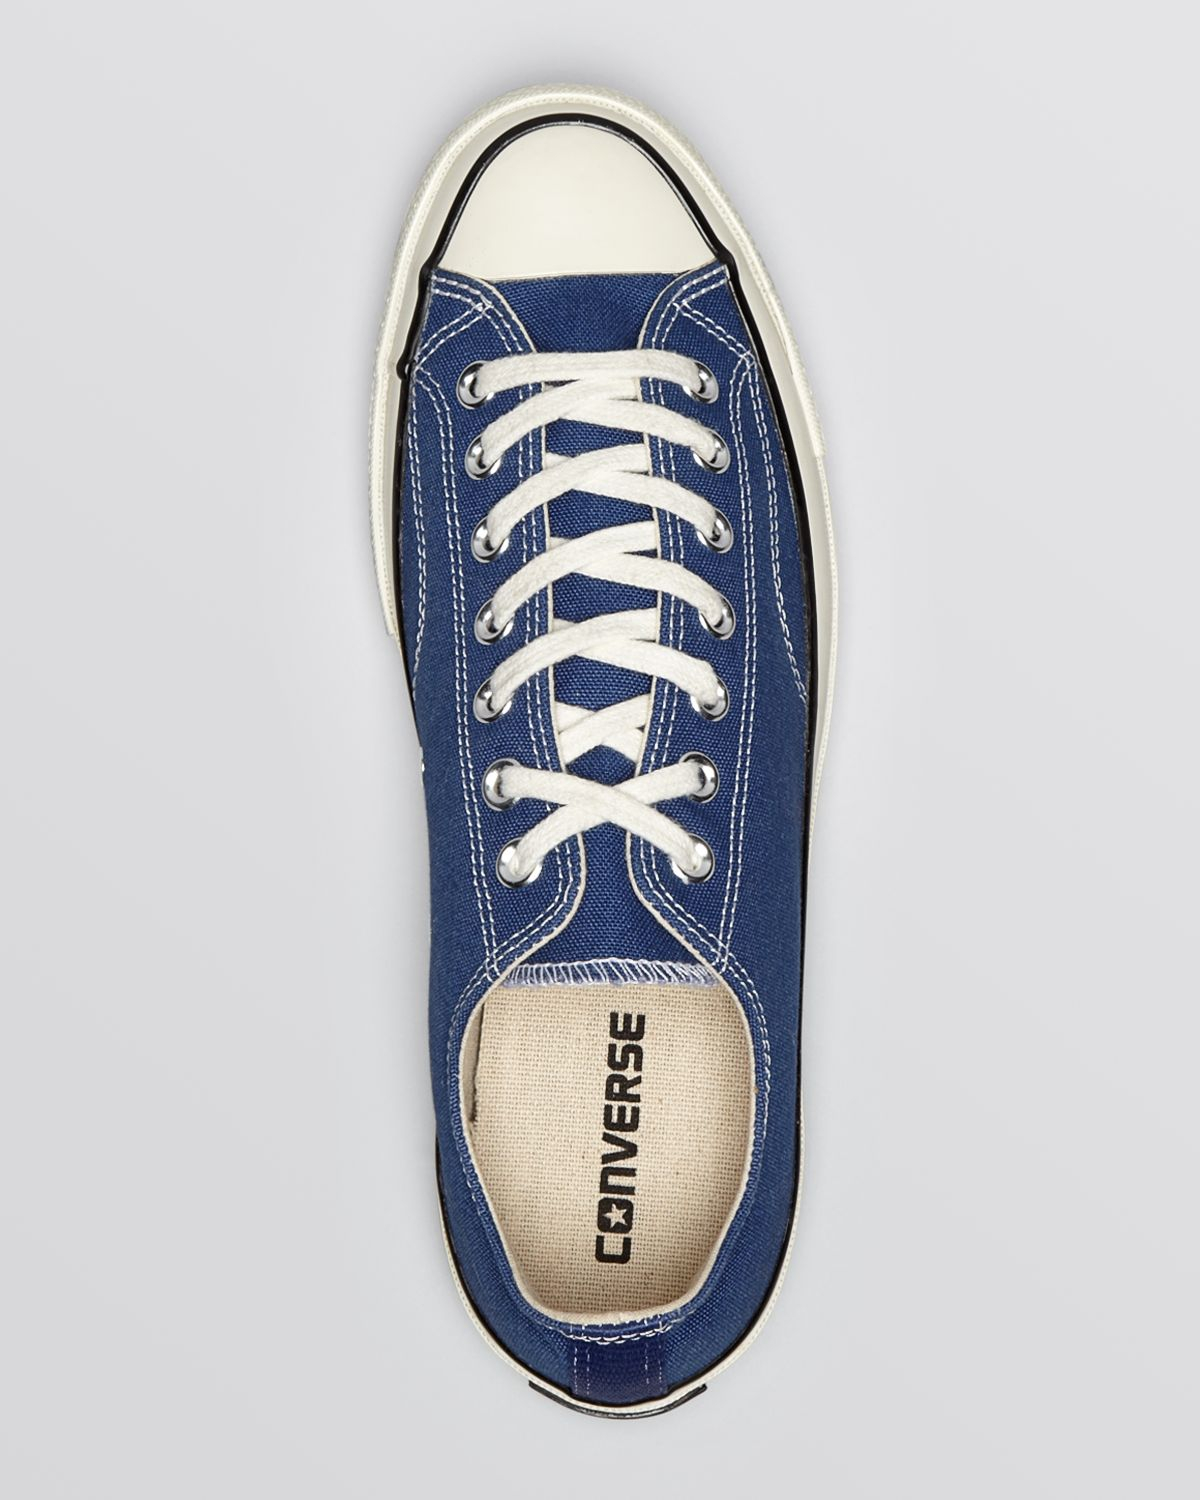 510d33003859 Lyst - Converse Chuck Taylor All Star  70 Low Top Sneakers in Blue ...